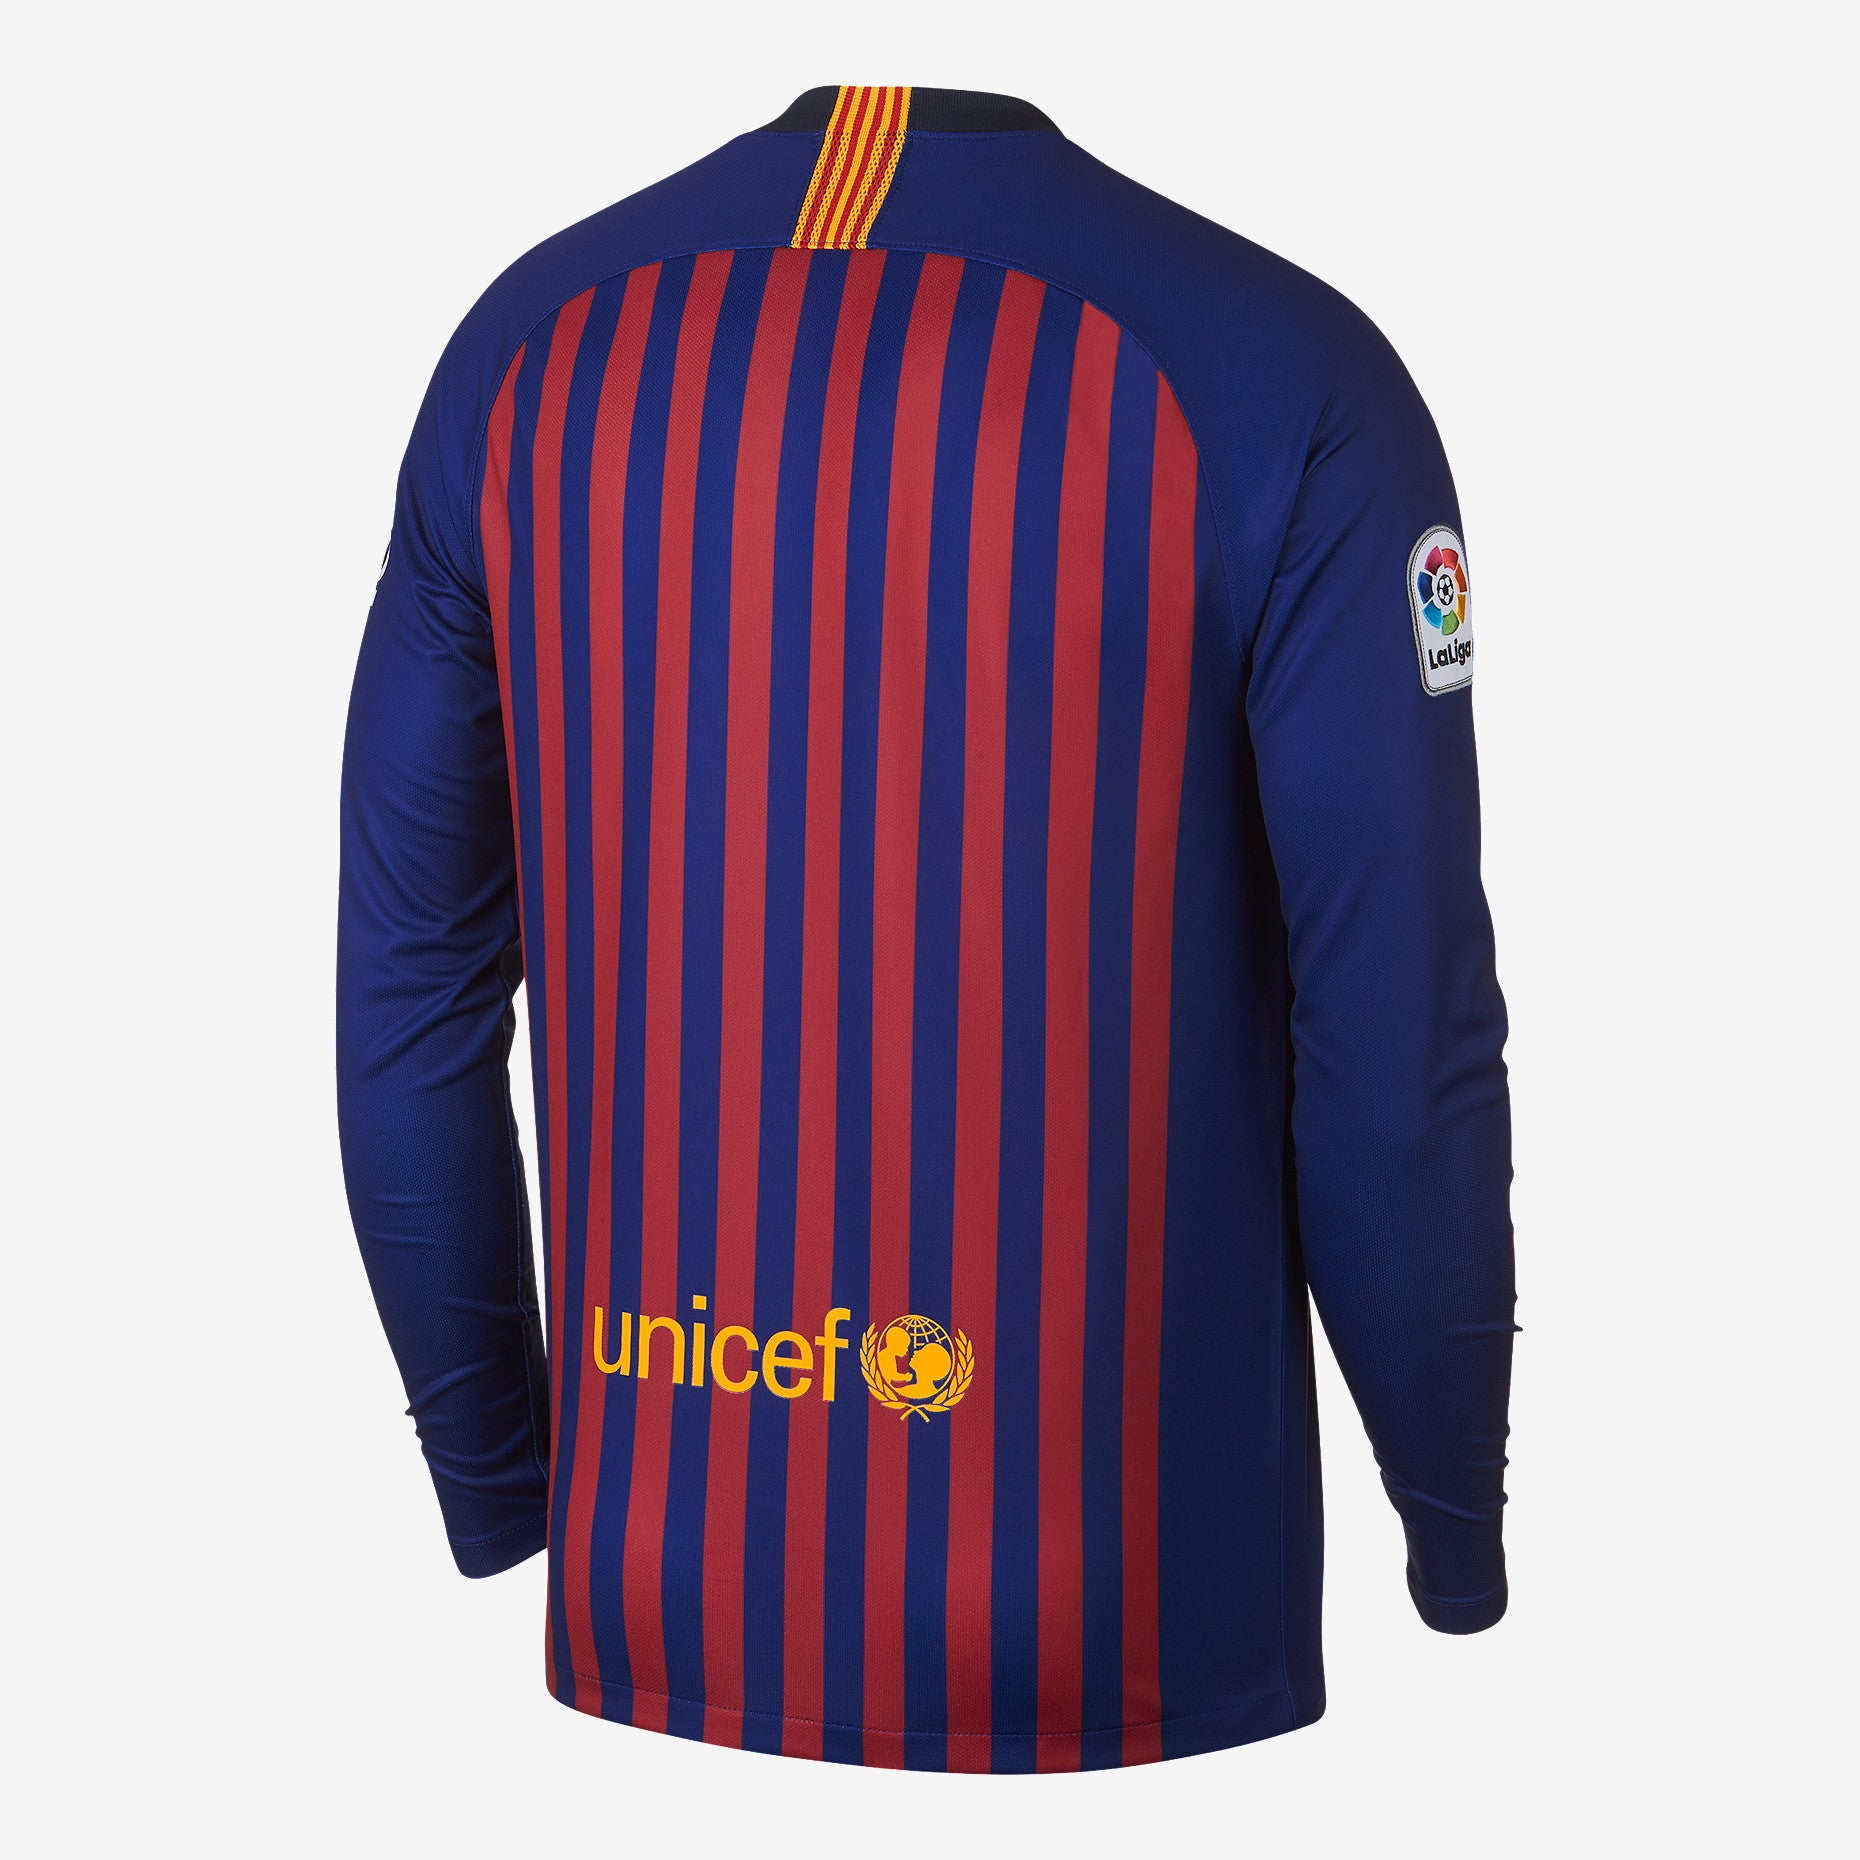 8882a4f2b21 Nike - Men s Nike Breathe FC Barcelona Home Long-Sleeve Stadium Jersey - La  Liga